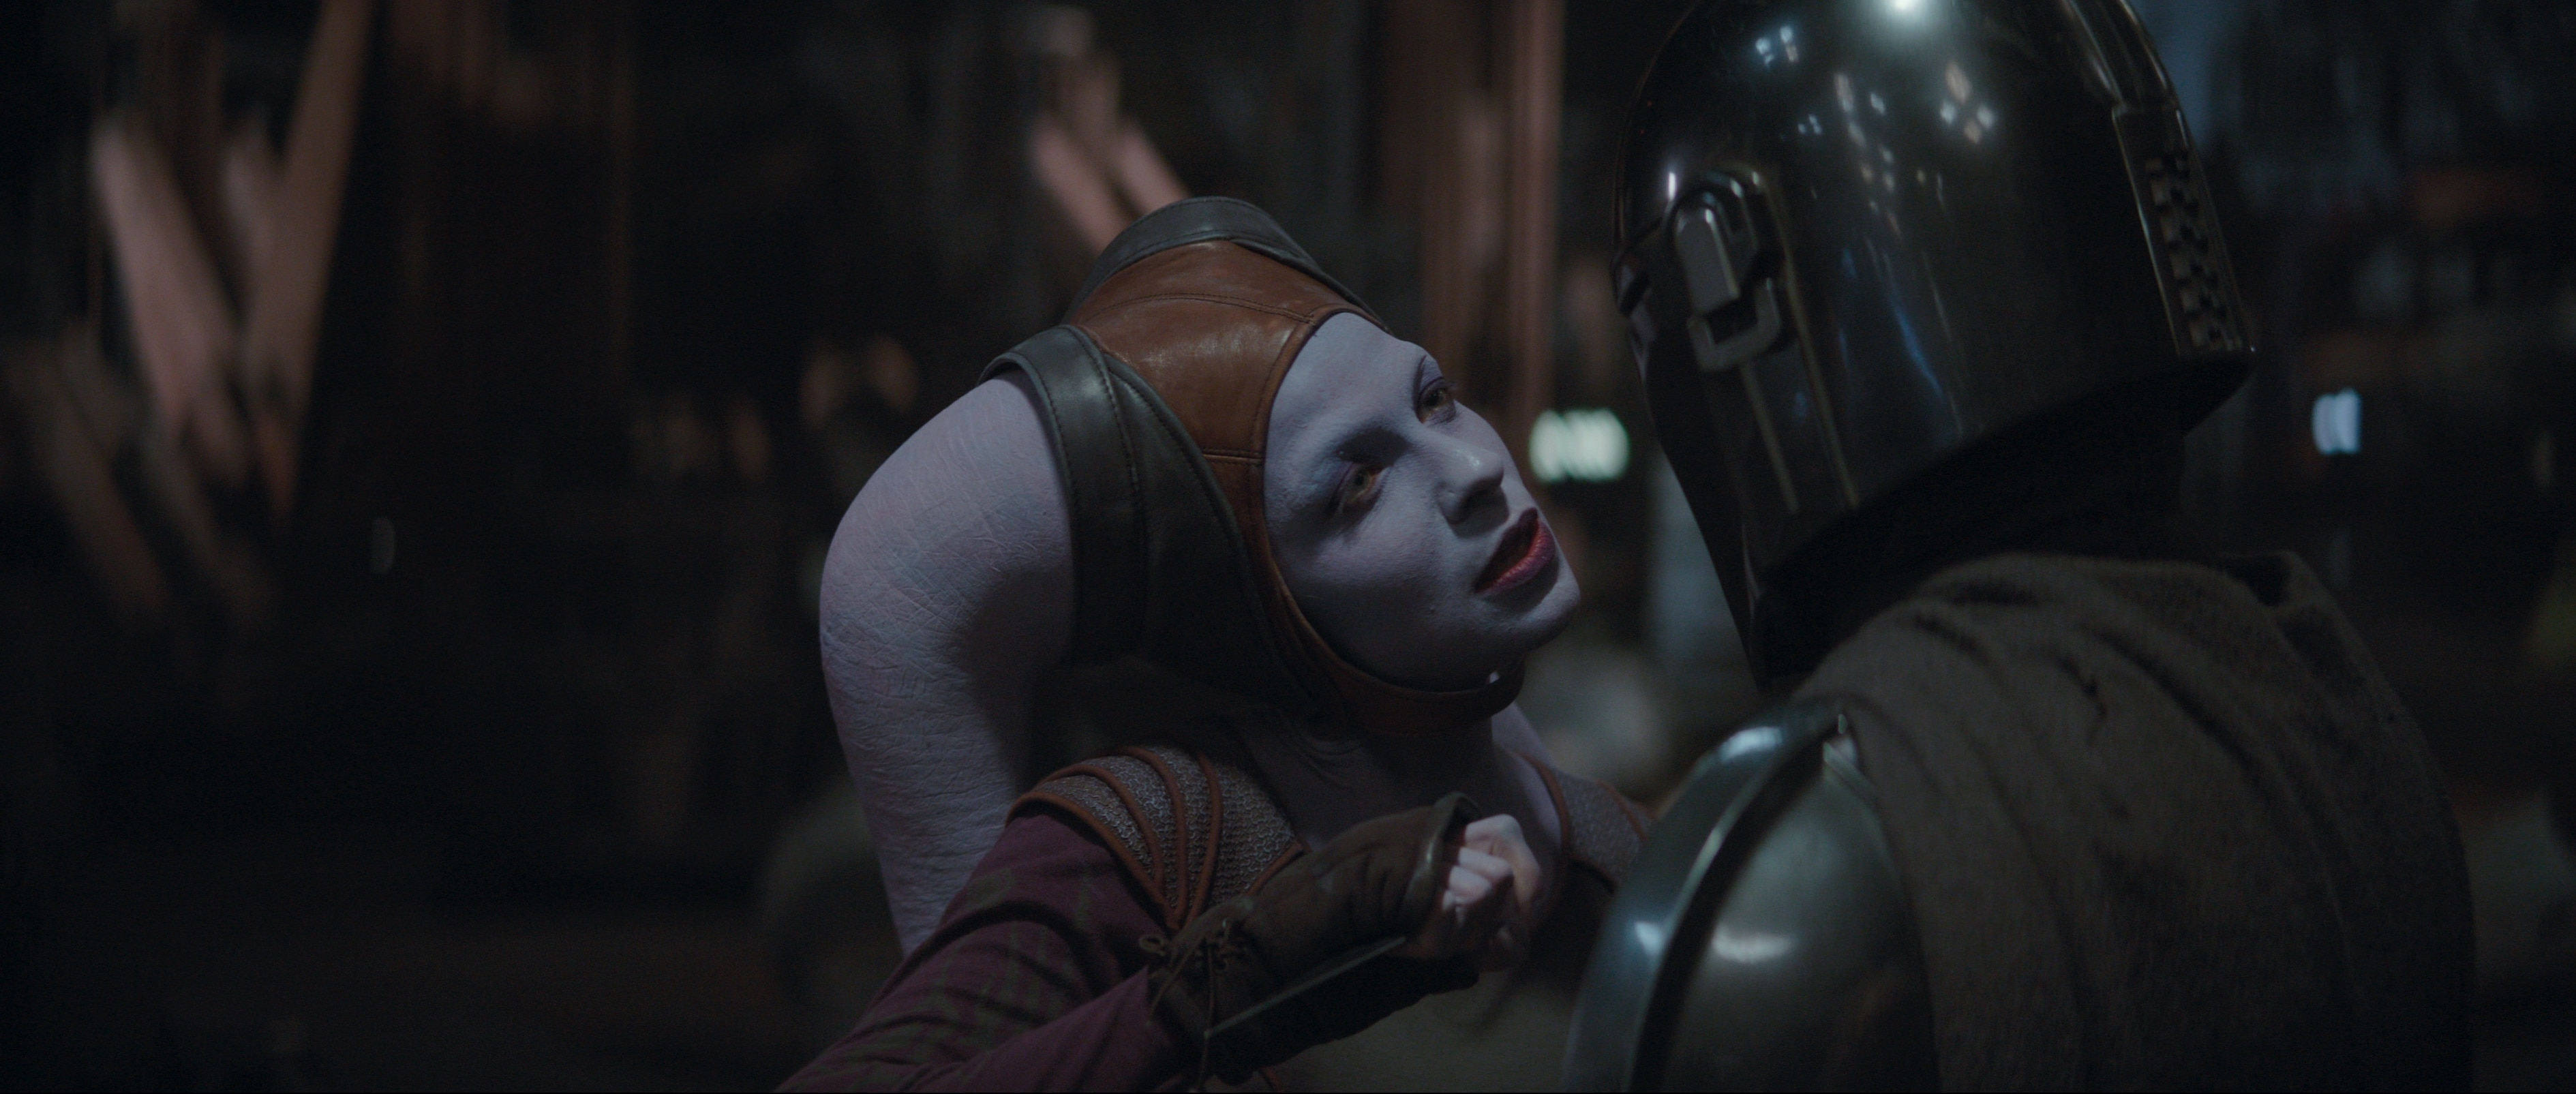 The Mandalorian episode 6 plays like meta-commentary on Star Wars violence